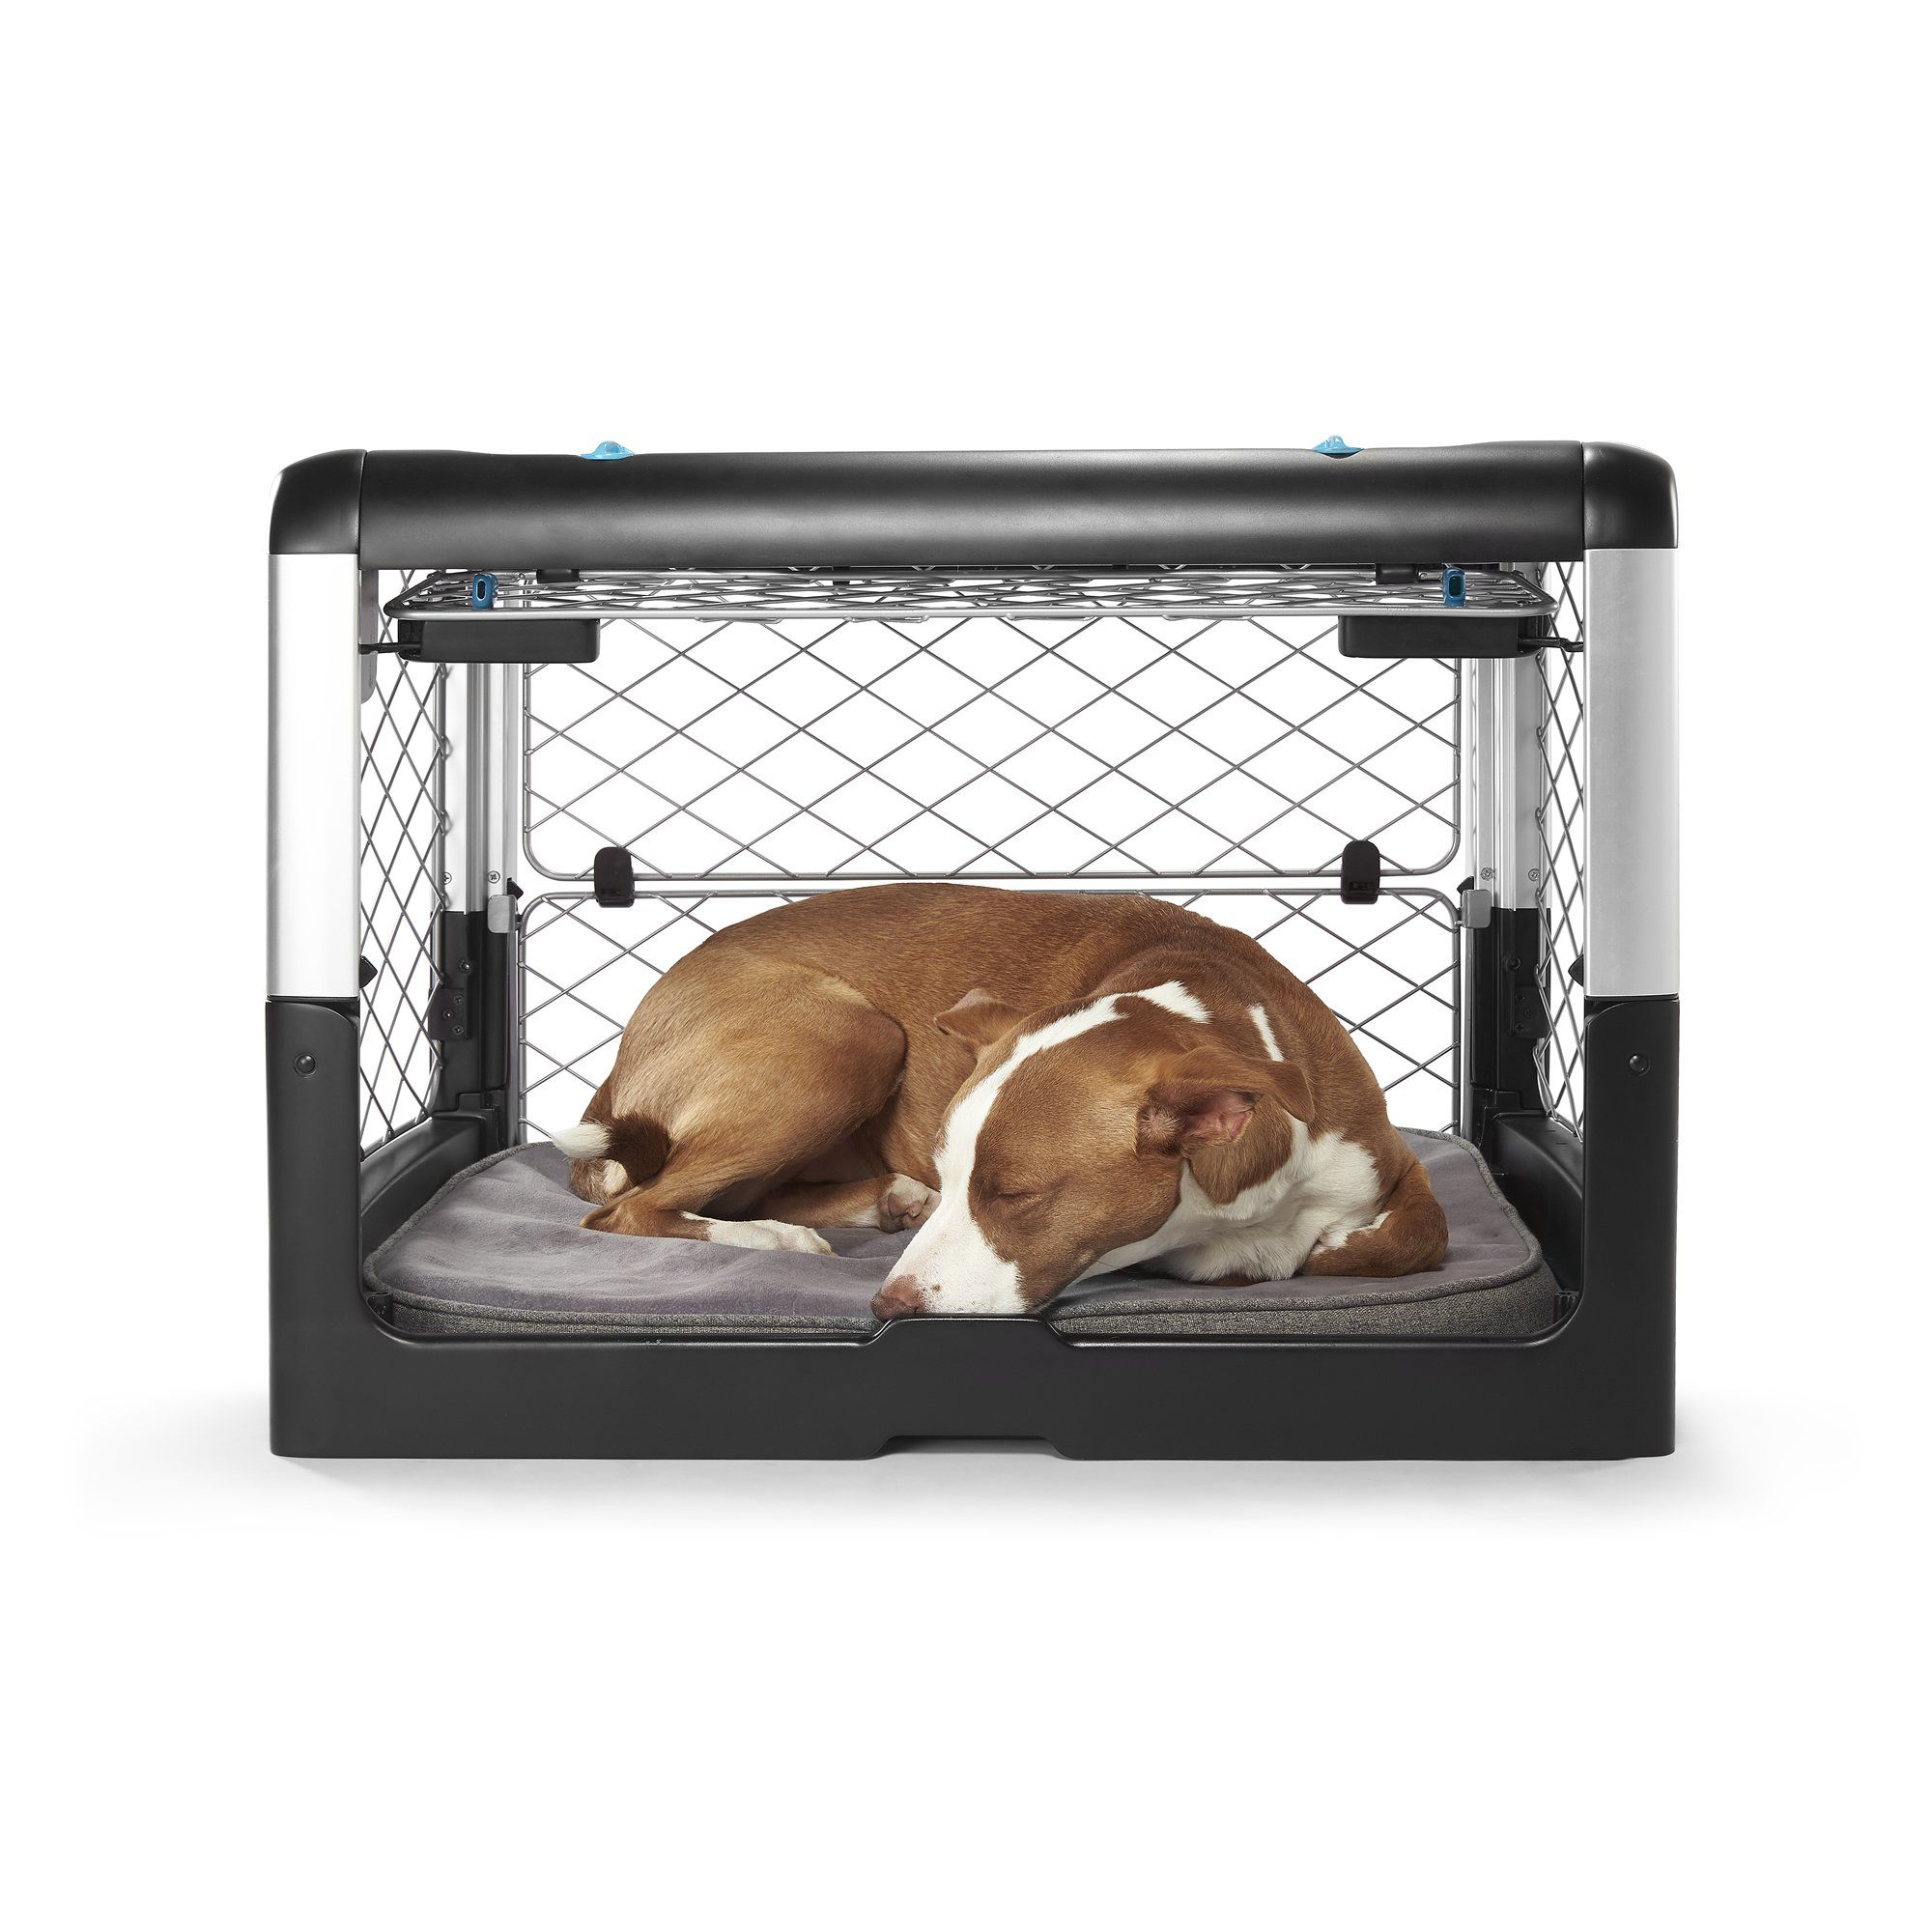 Snooz Collapsible Dog Crate Dog Crate Dog Crate Pads